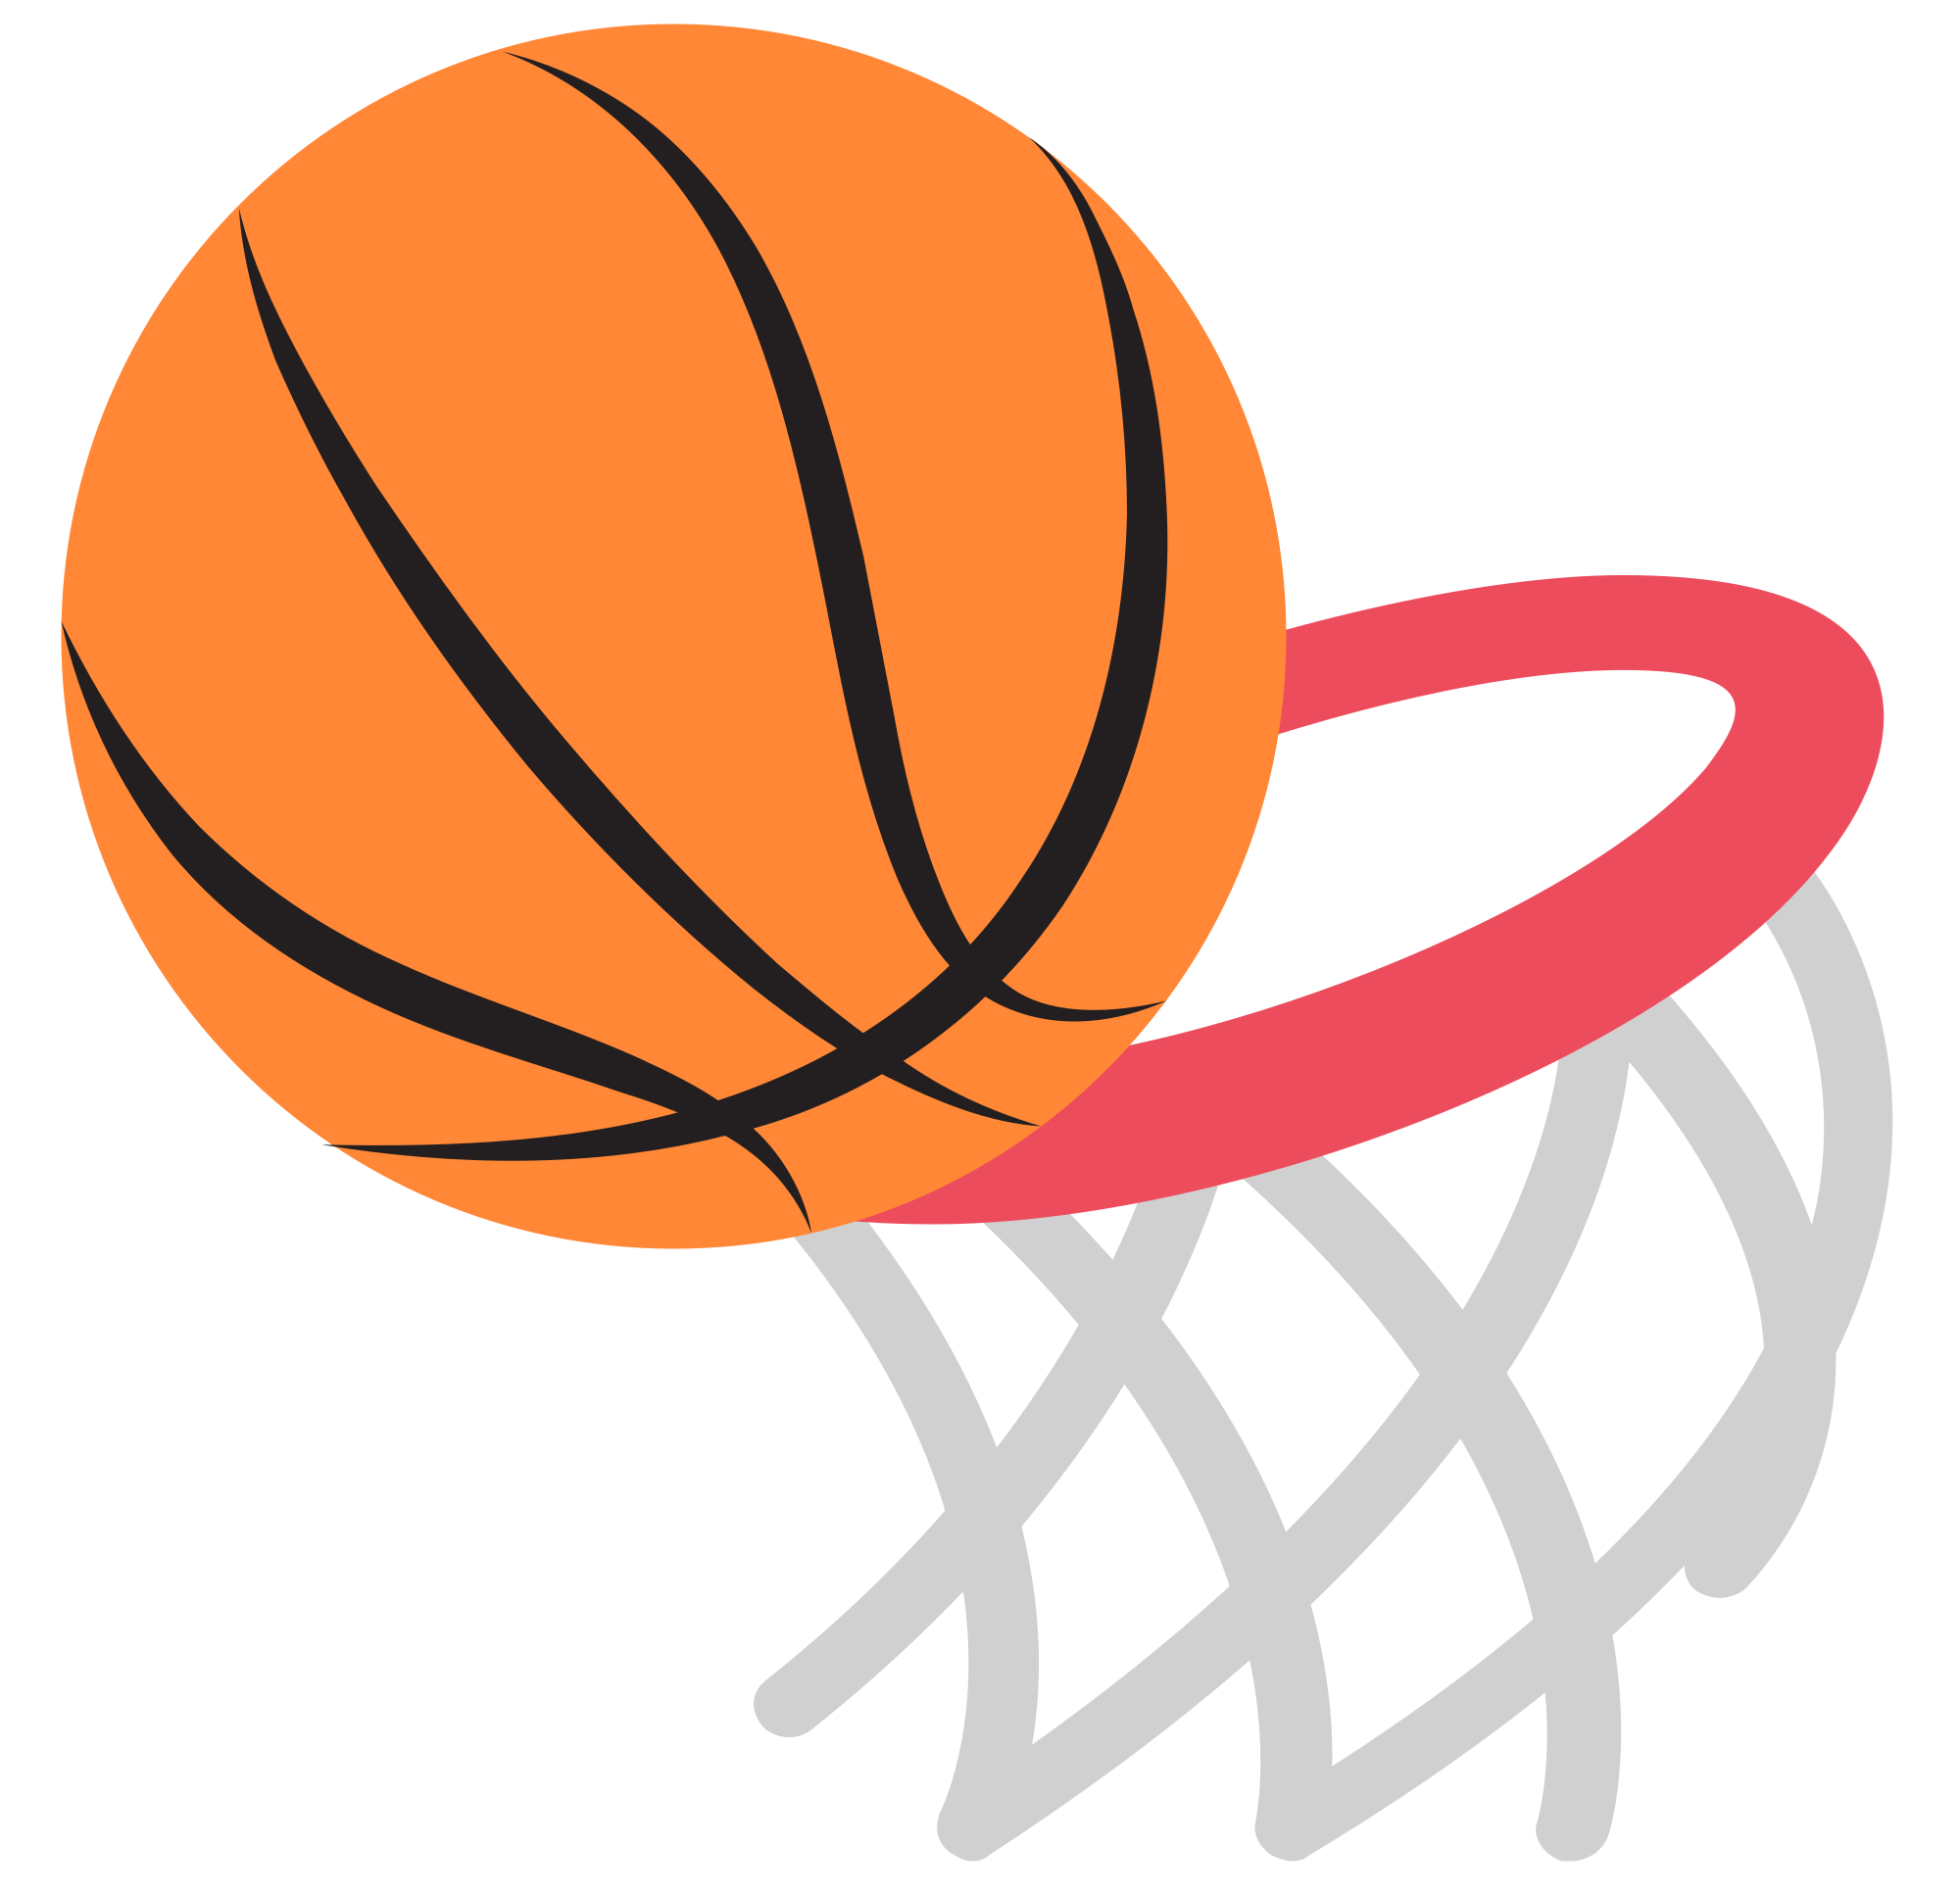 One on one basketball clipart png transparent download The Basketball Drawer – Focused on the players, focused on the basket png transparent download